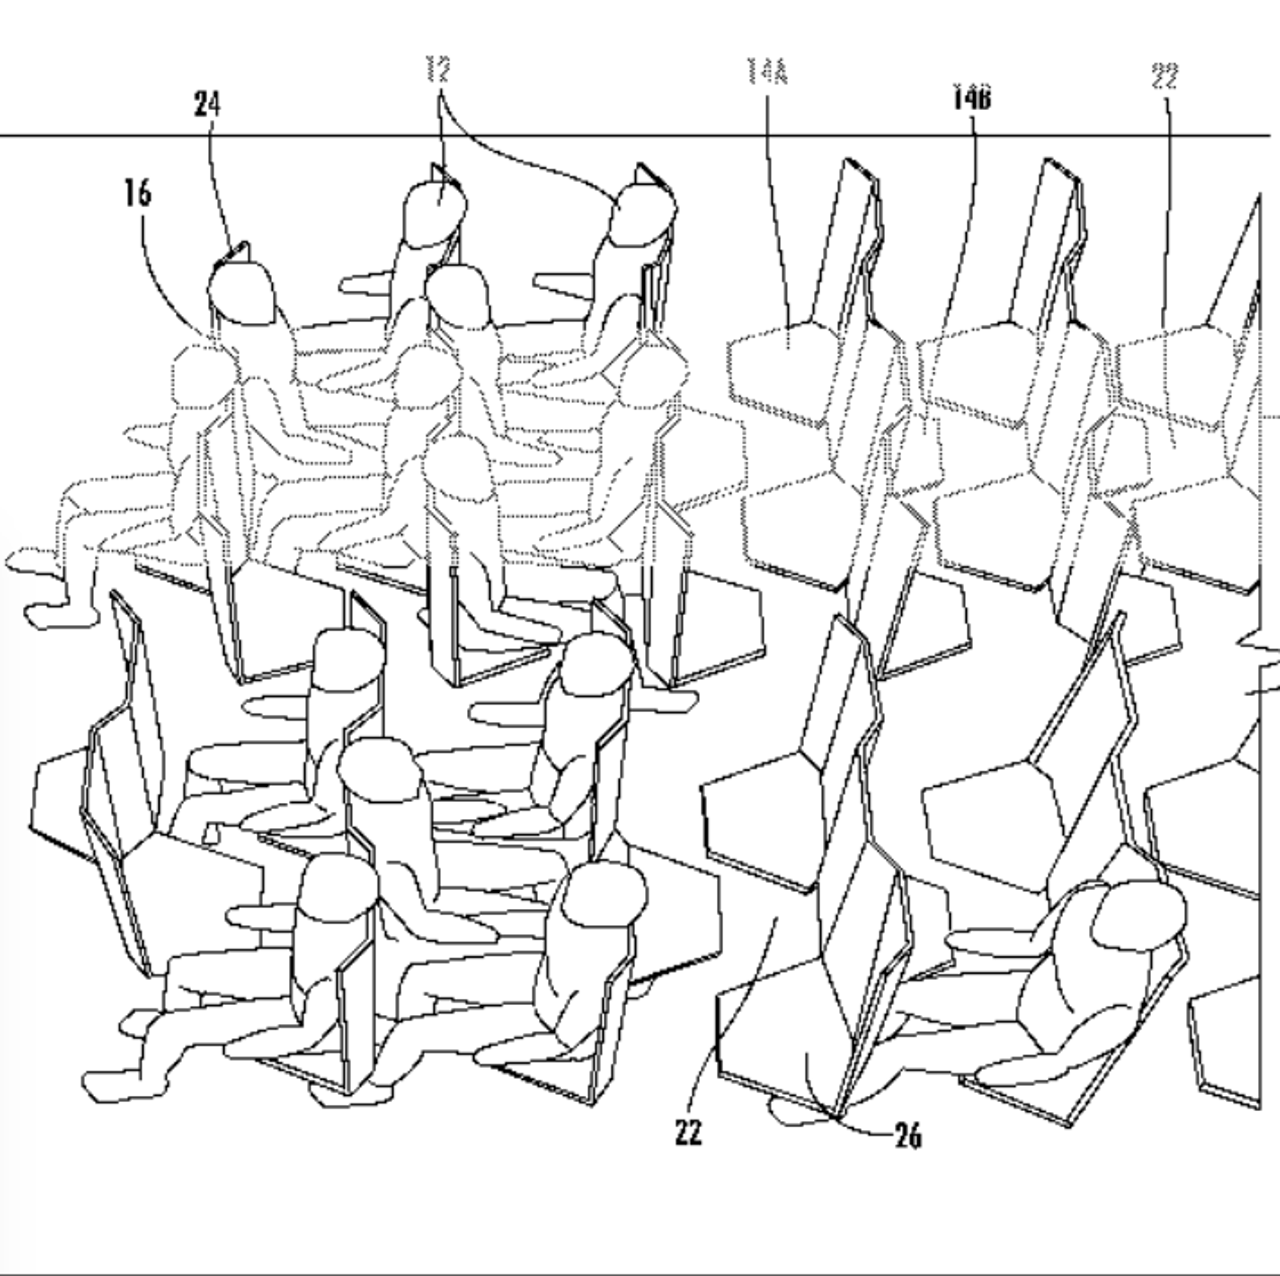 This Is The Most Comically Hellish Design For Airplane Seating Yet